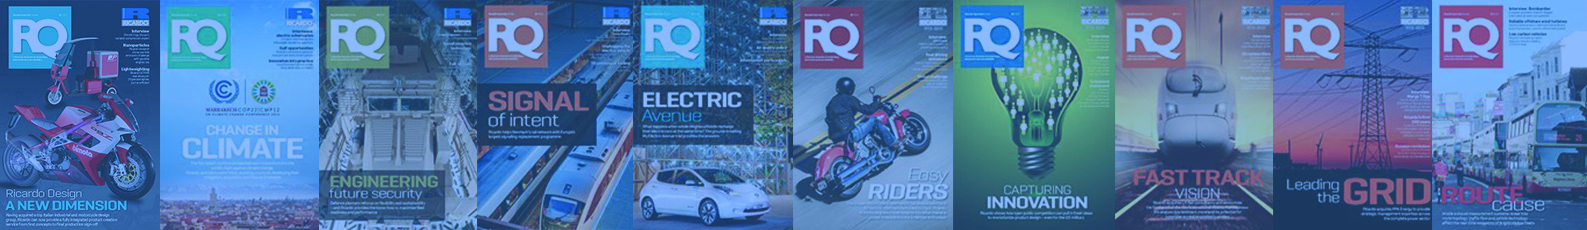 Ricardo Quarterly subscription